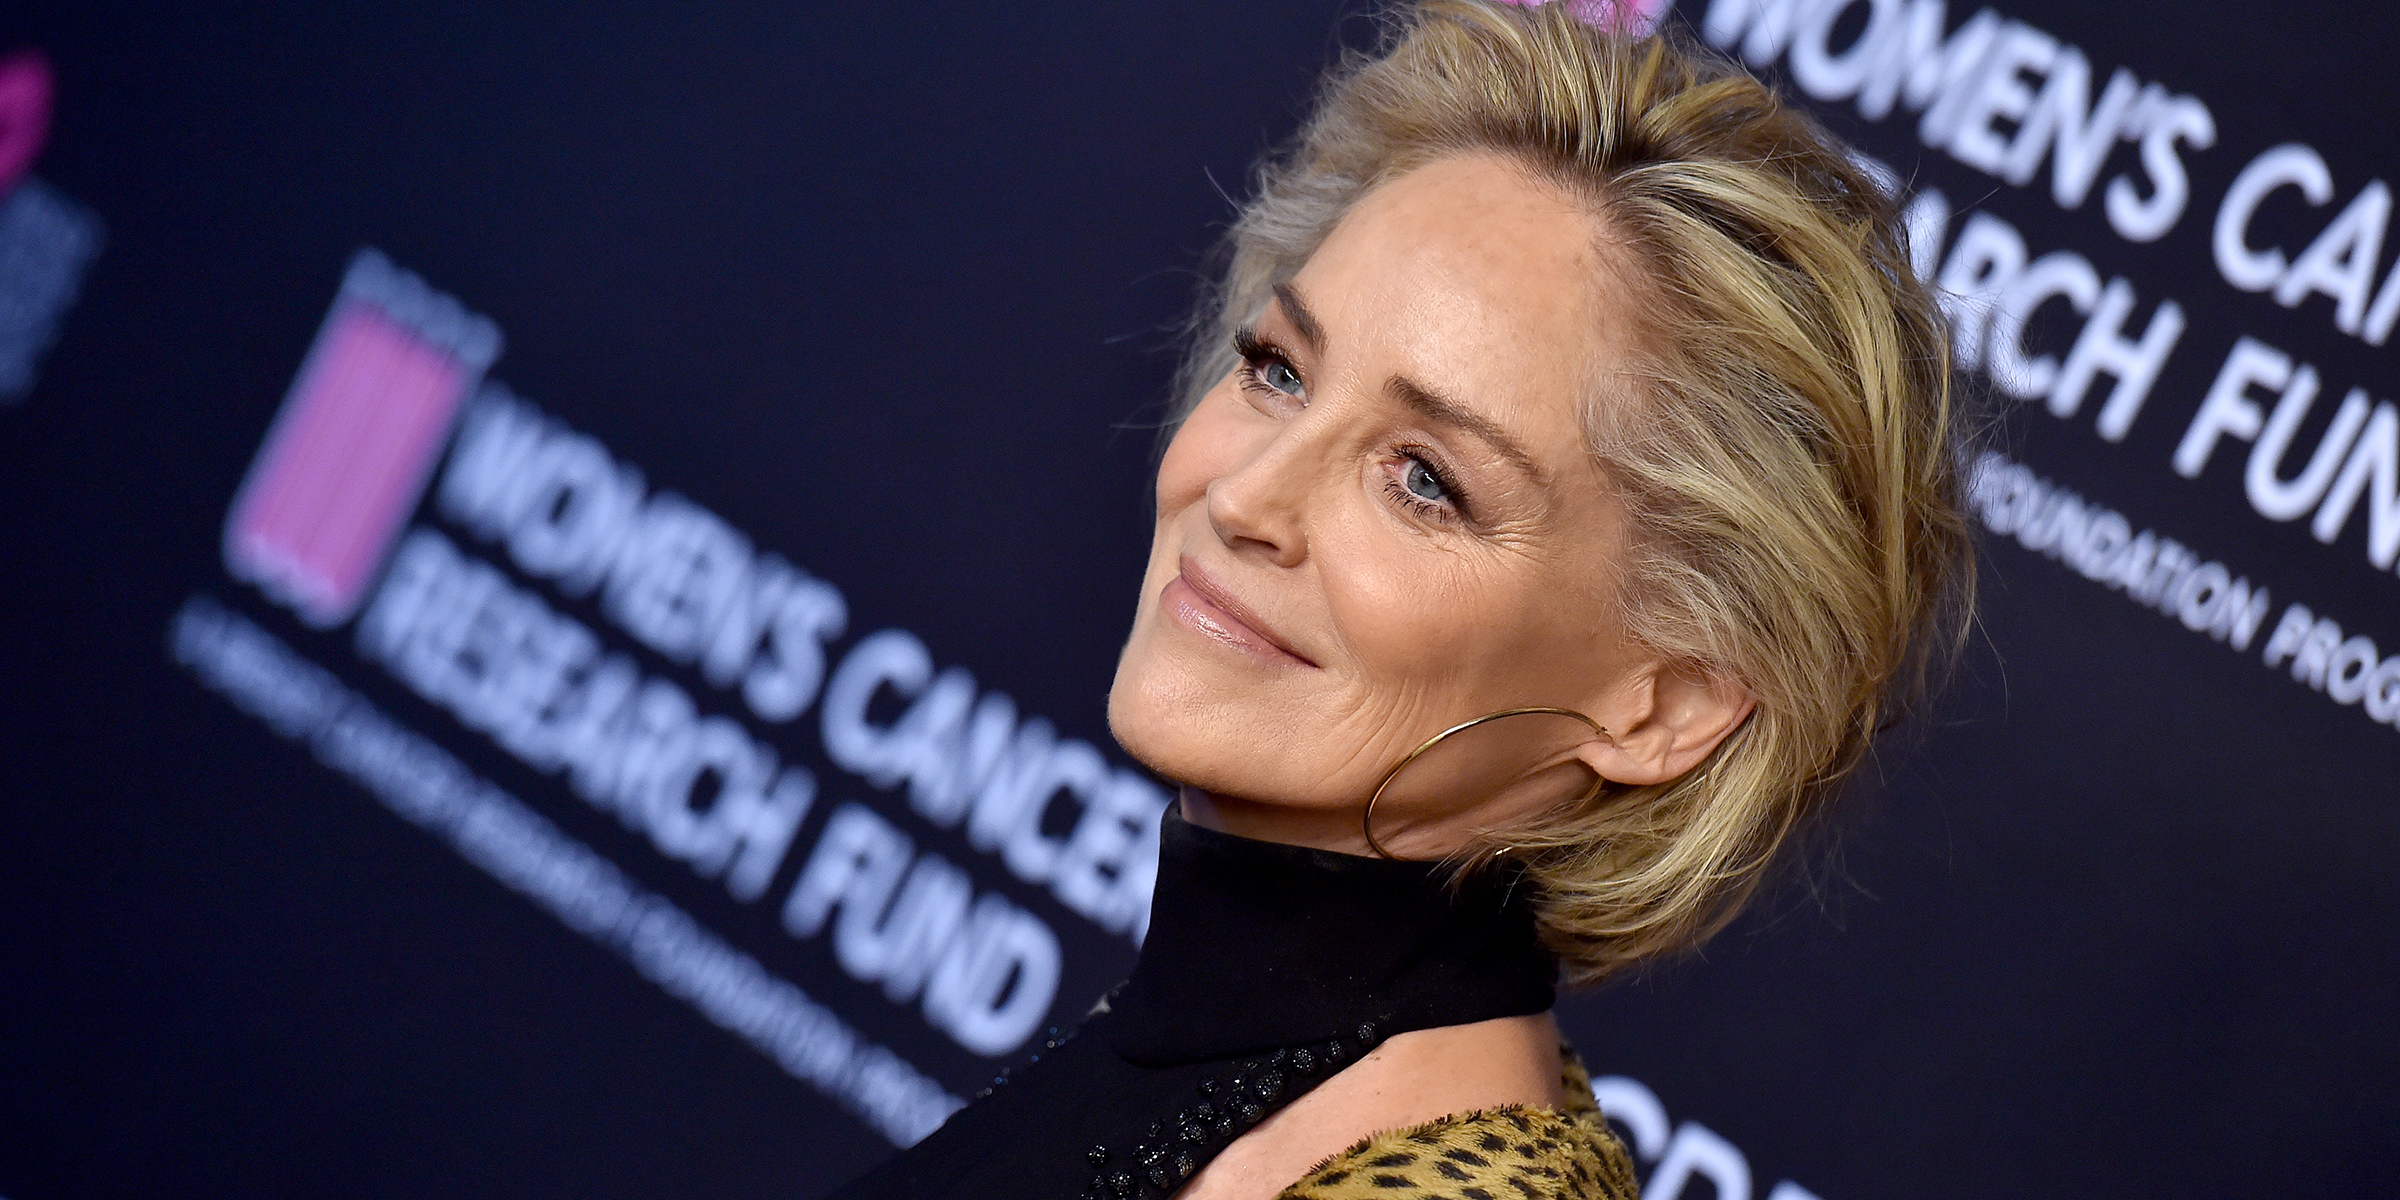 Sharon Stone says people were 'brutally unkind' after she suffered a stroke